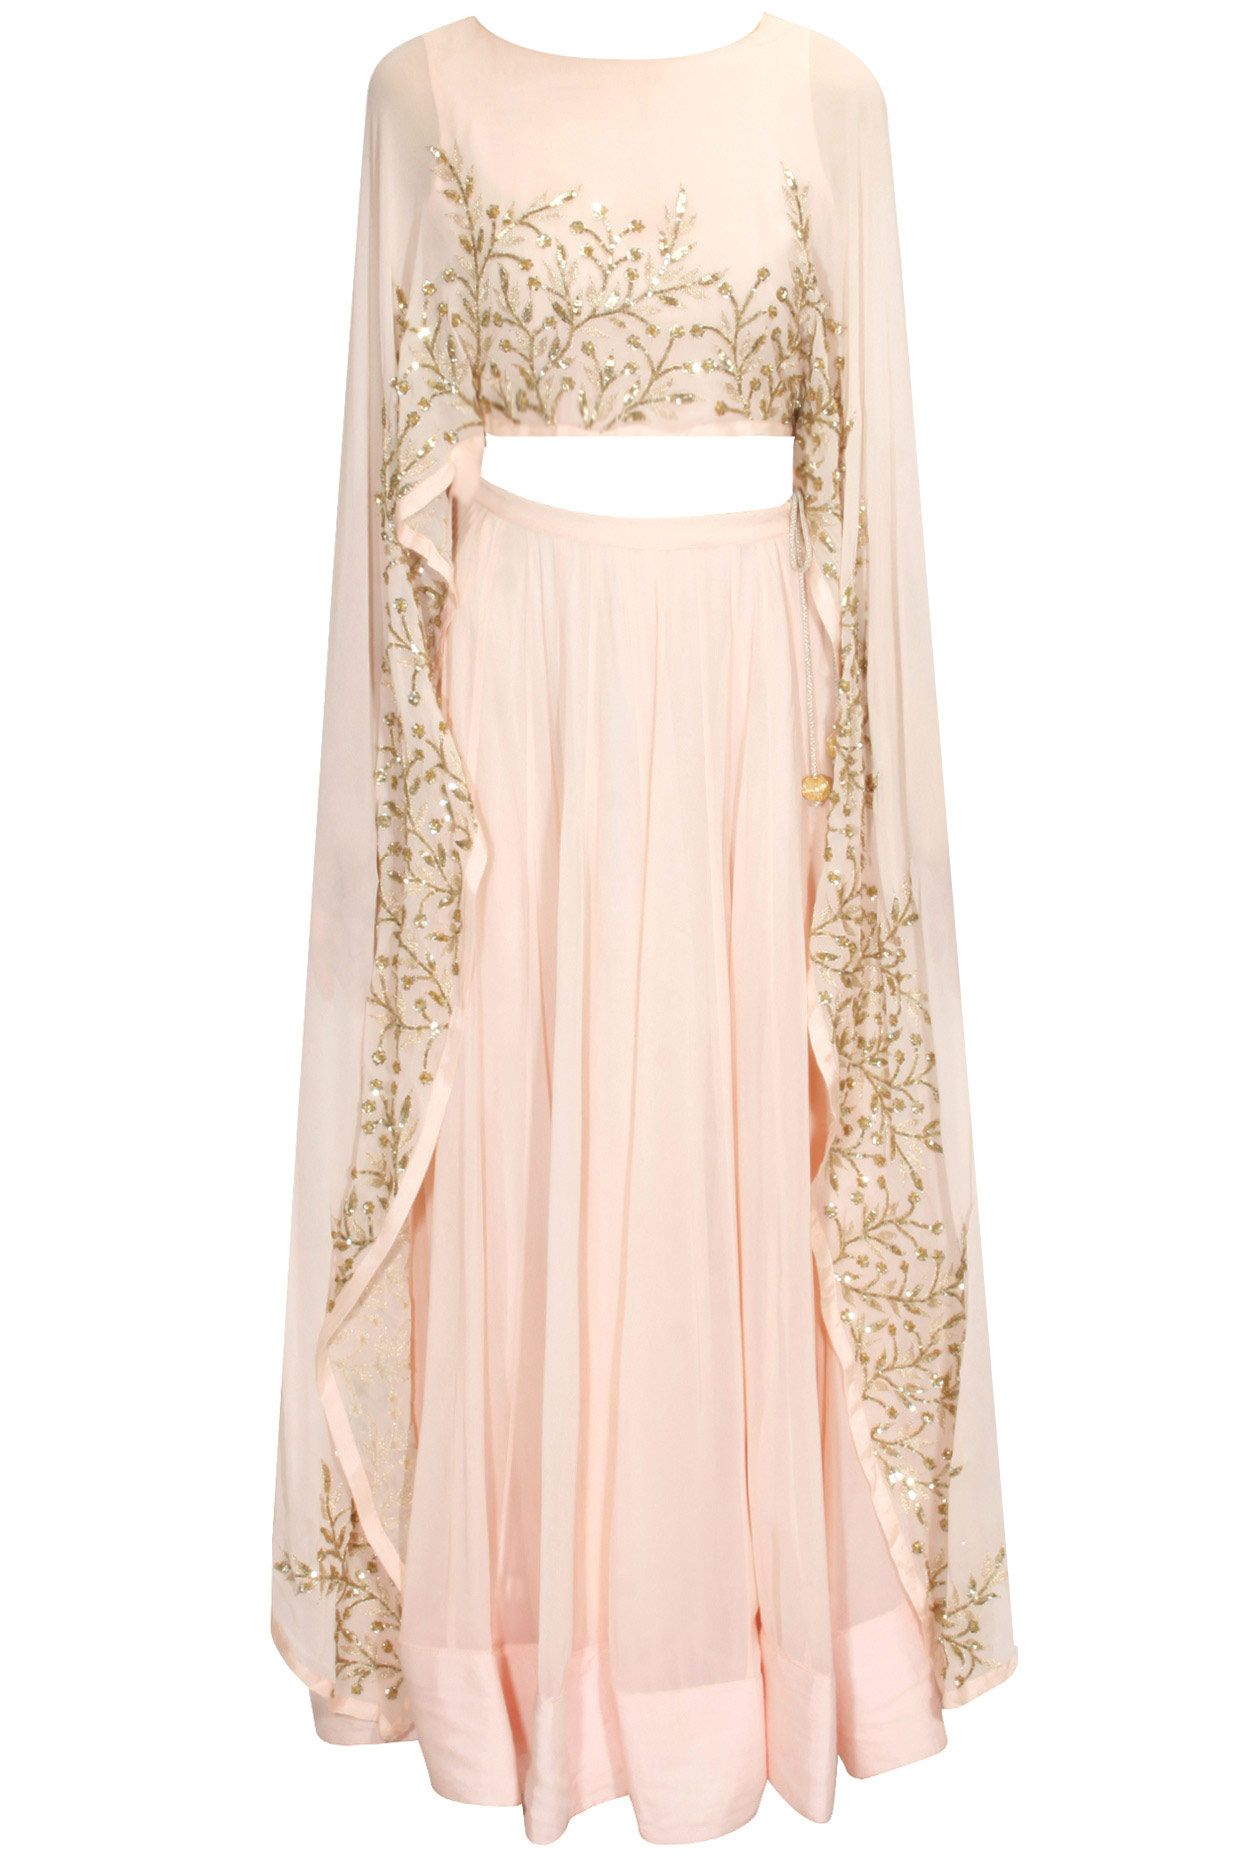 ee6297296b1d Blush pink embroidered cape lehenga set available only at Pernia's Pop Up  Shop.